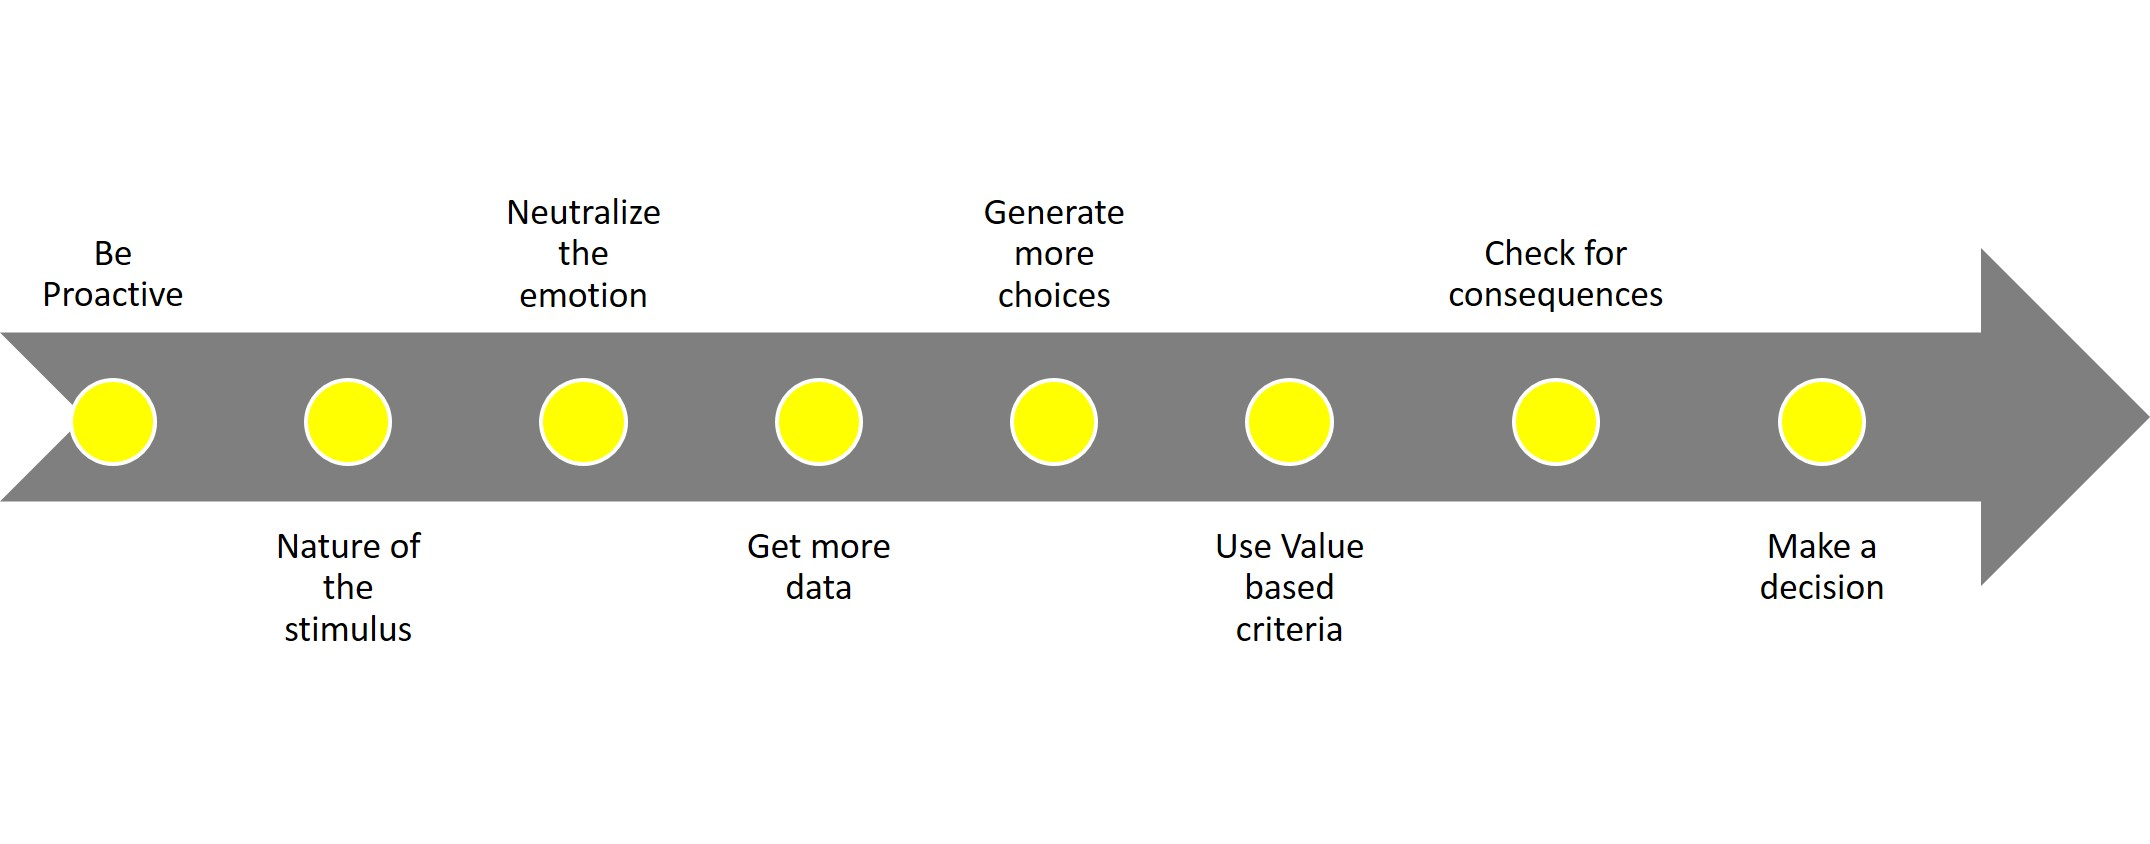 8 Strategies For Effective Decision Making